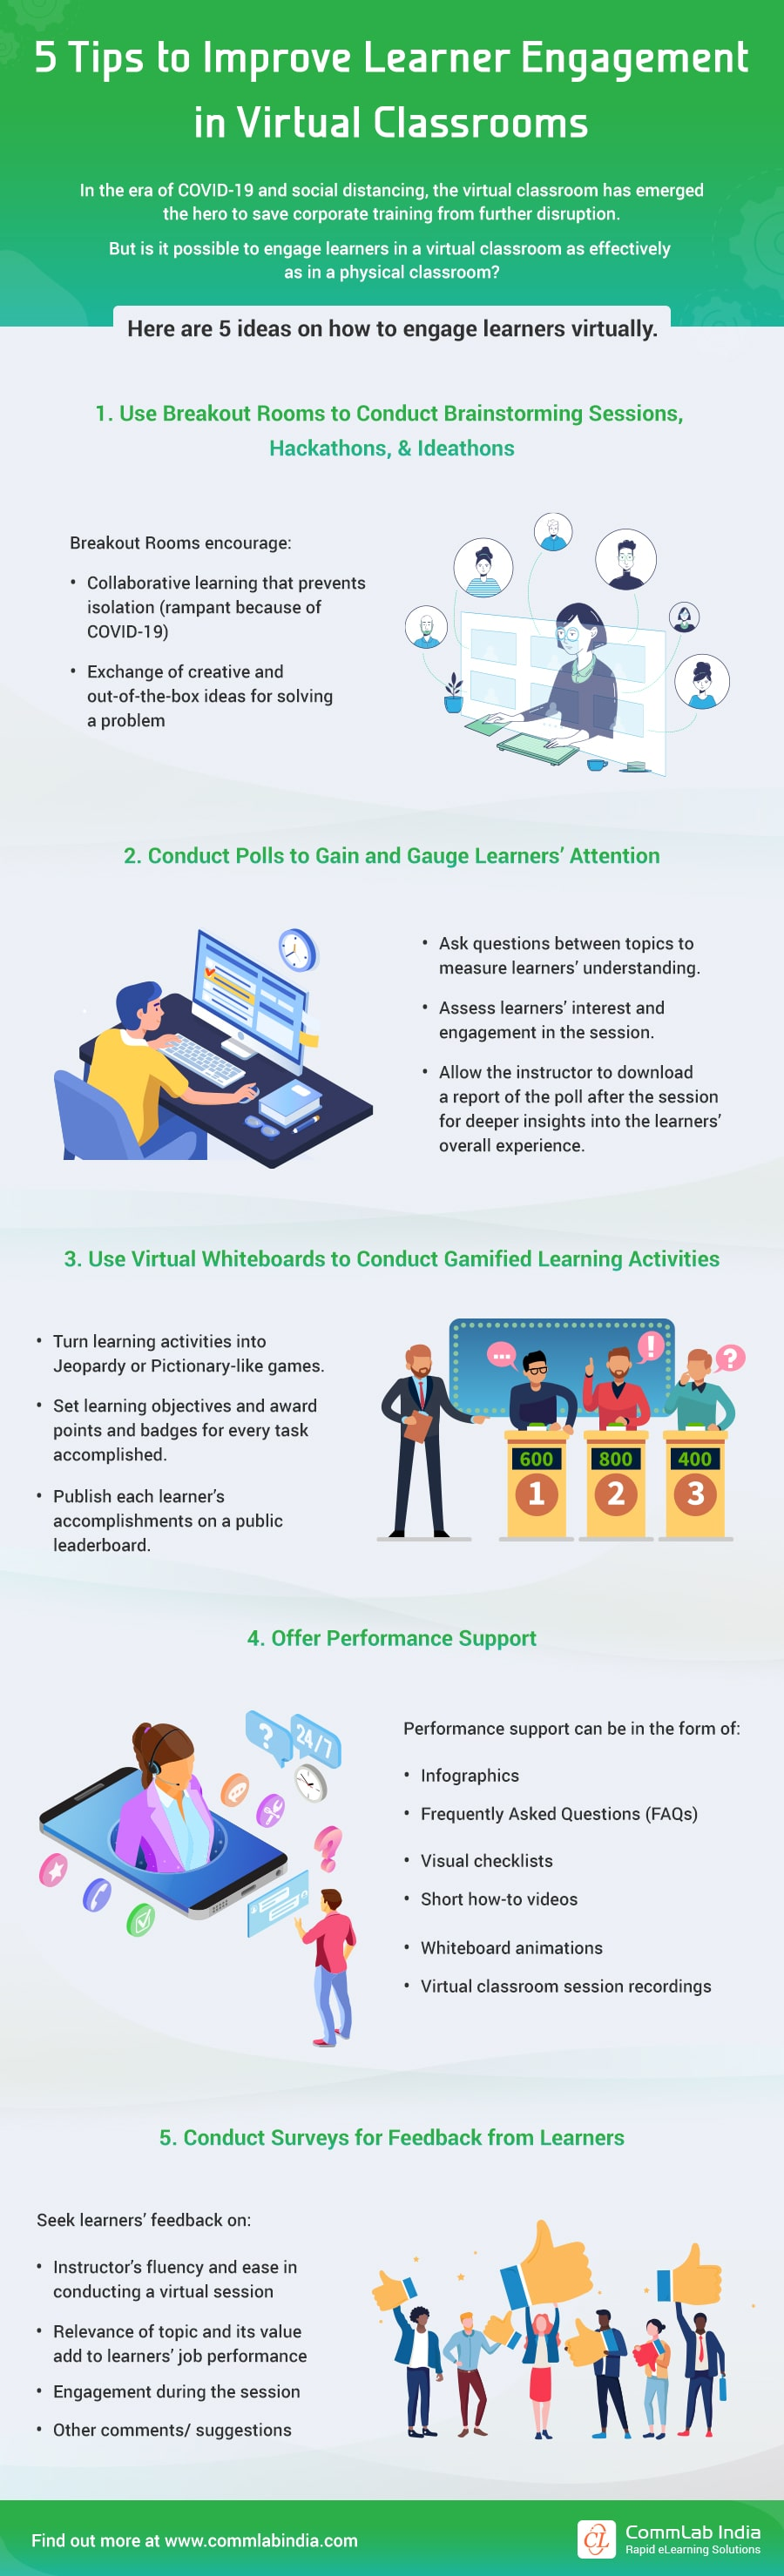 Virtual Classroom: 5 Ways to Improve Learner Engagement